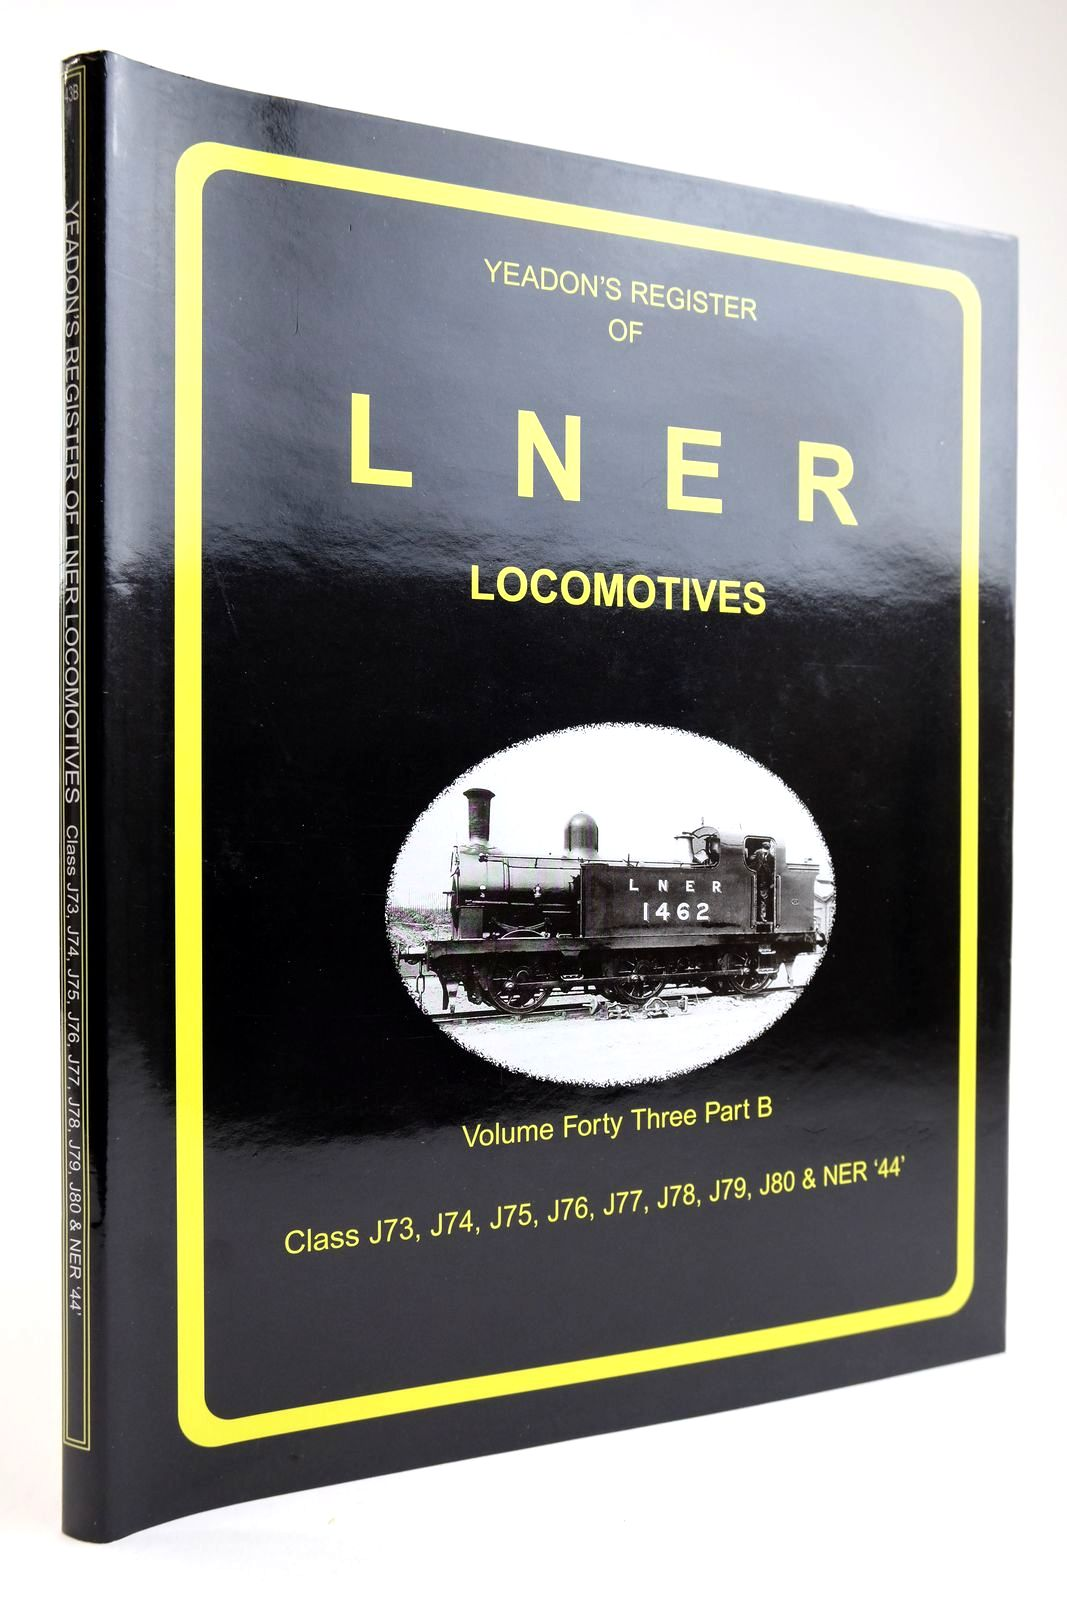 Photo of YEADON'S REGISTER OF LNER LOCOMOTIVES VOLUME FORTY THREE PART B- Stock Number: 2133578